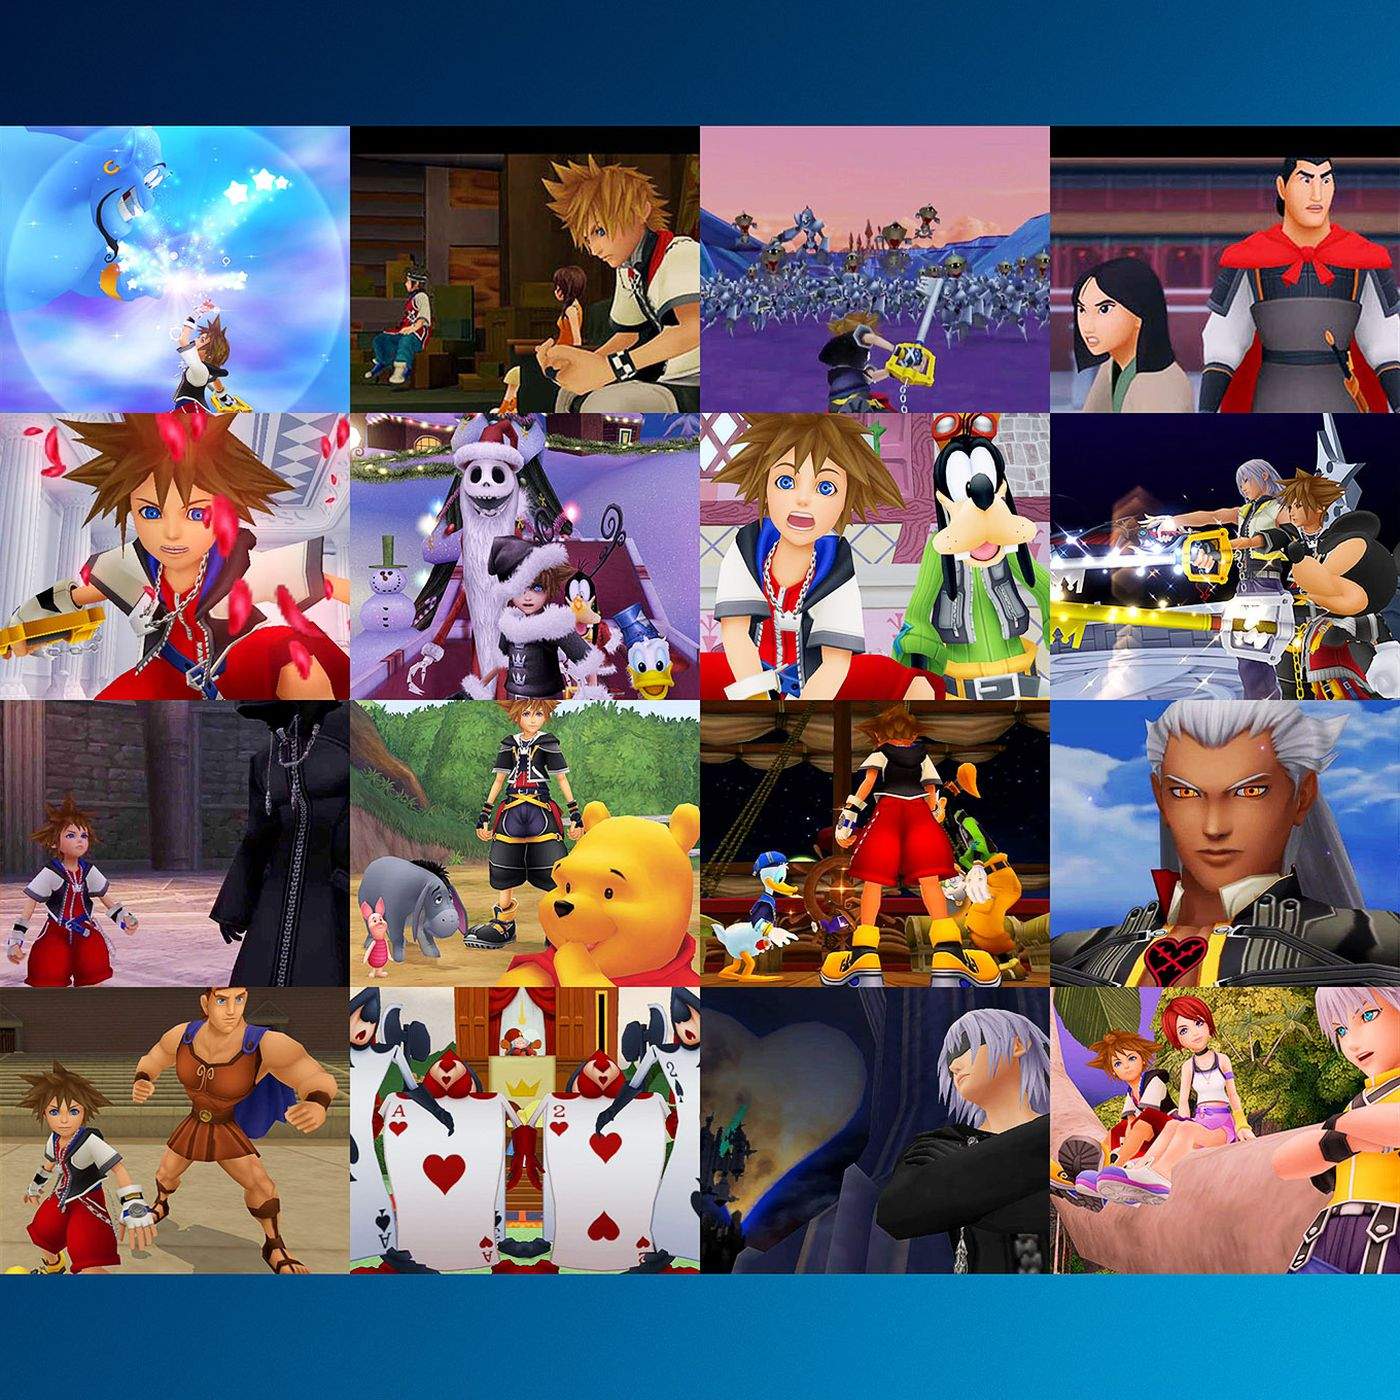 Kingdom Hearts And Kingdom Hearts 2 The Story And Timeline So